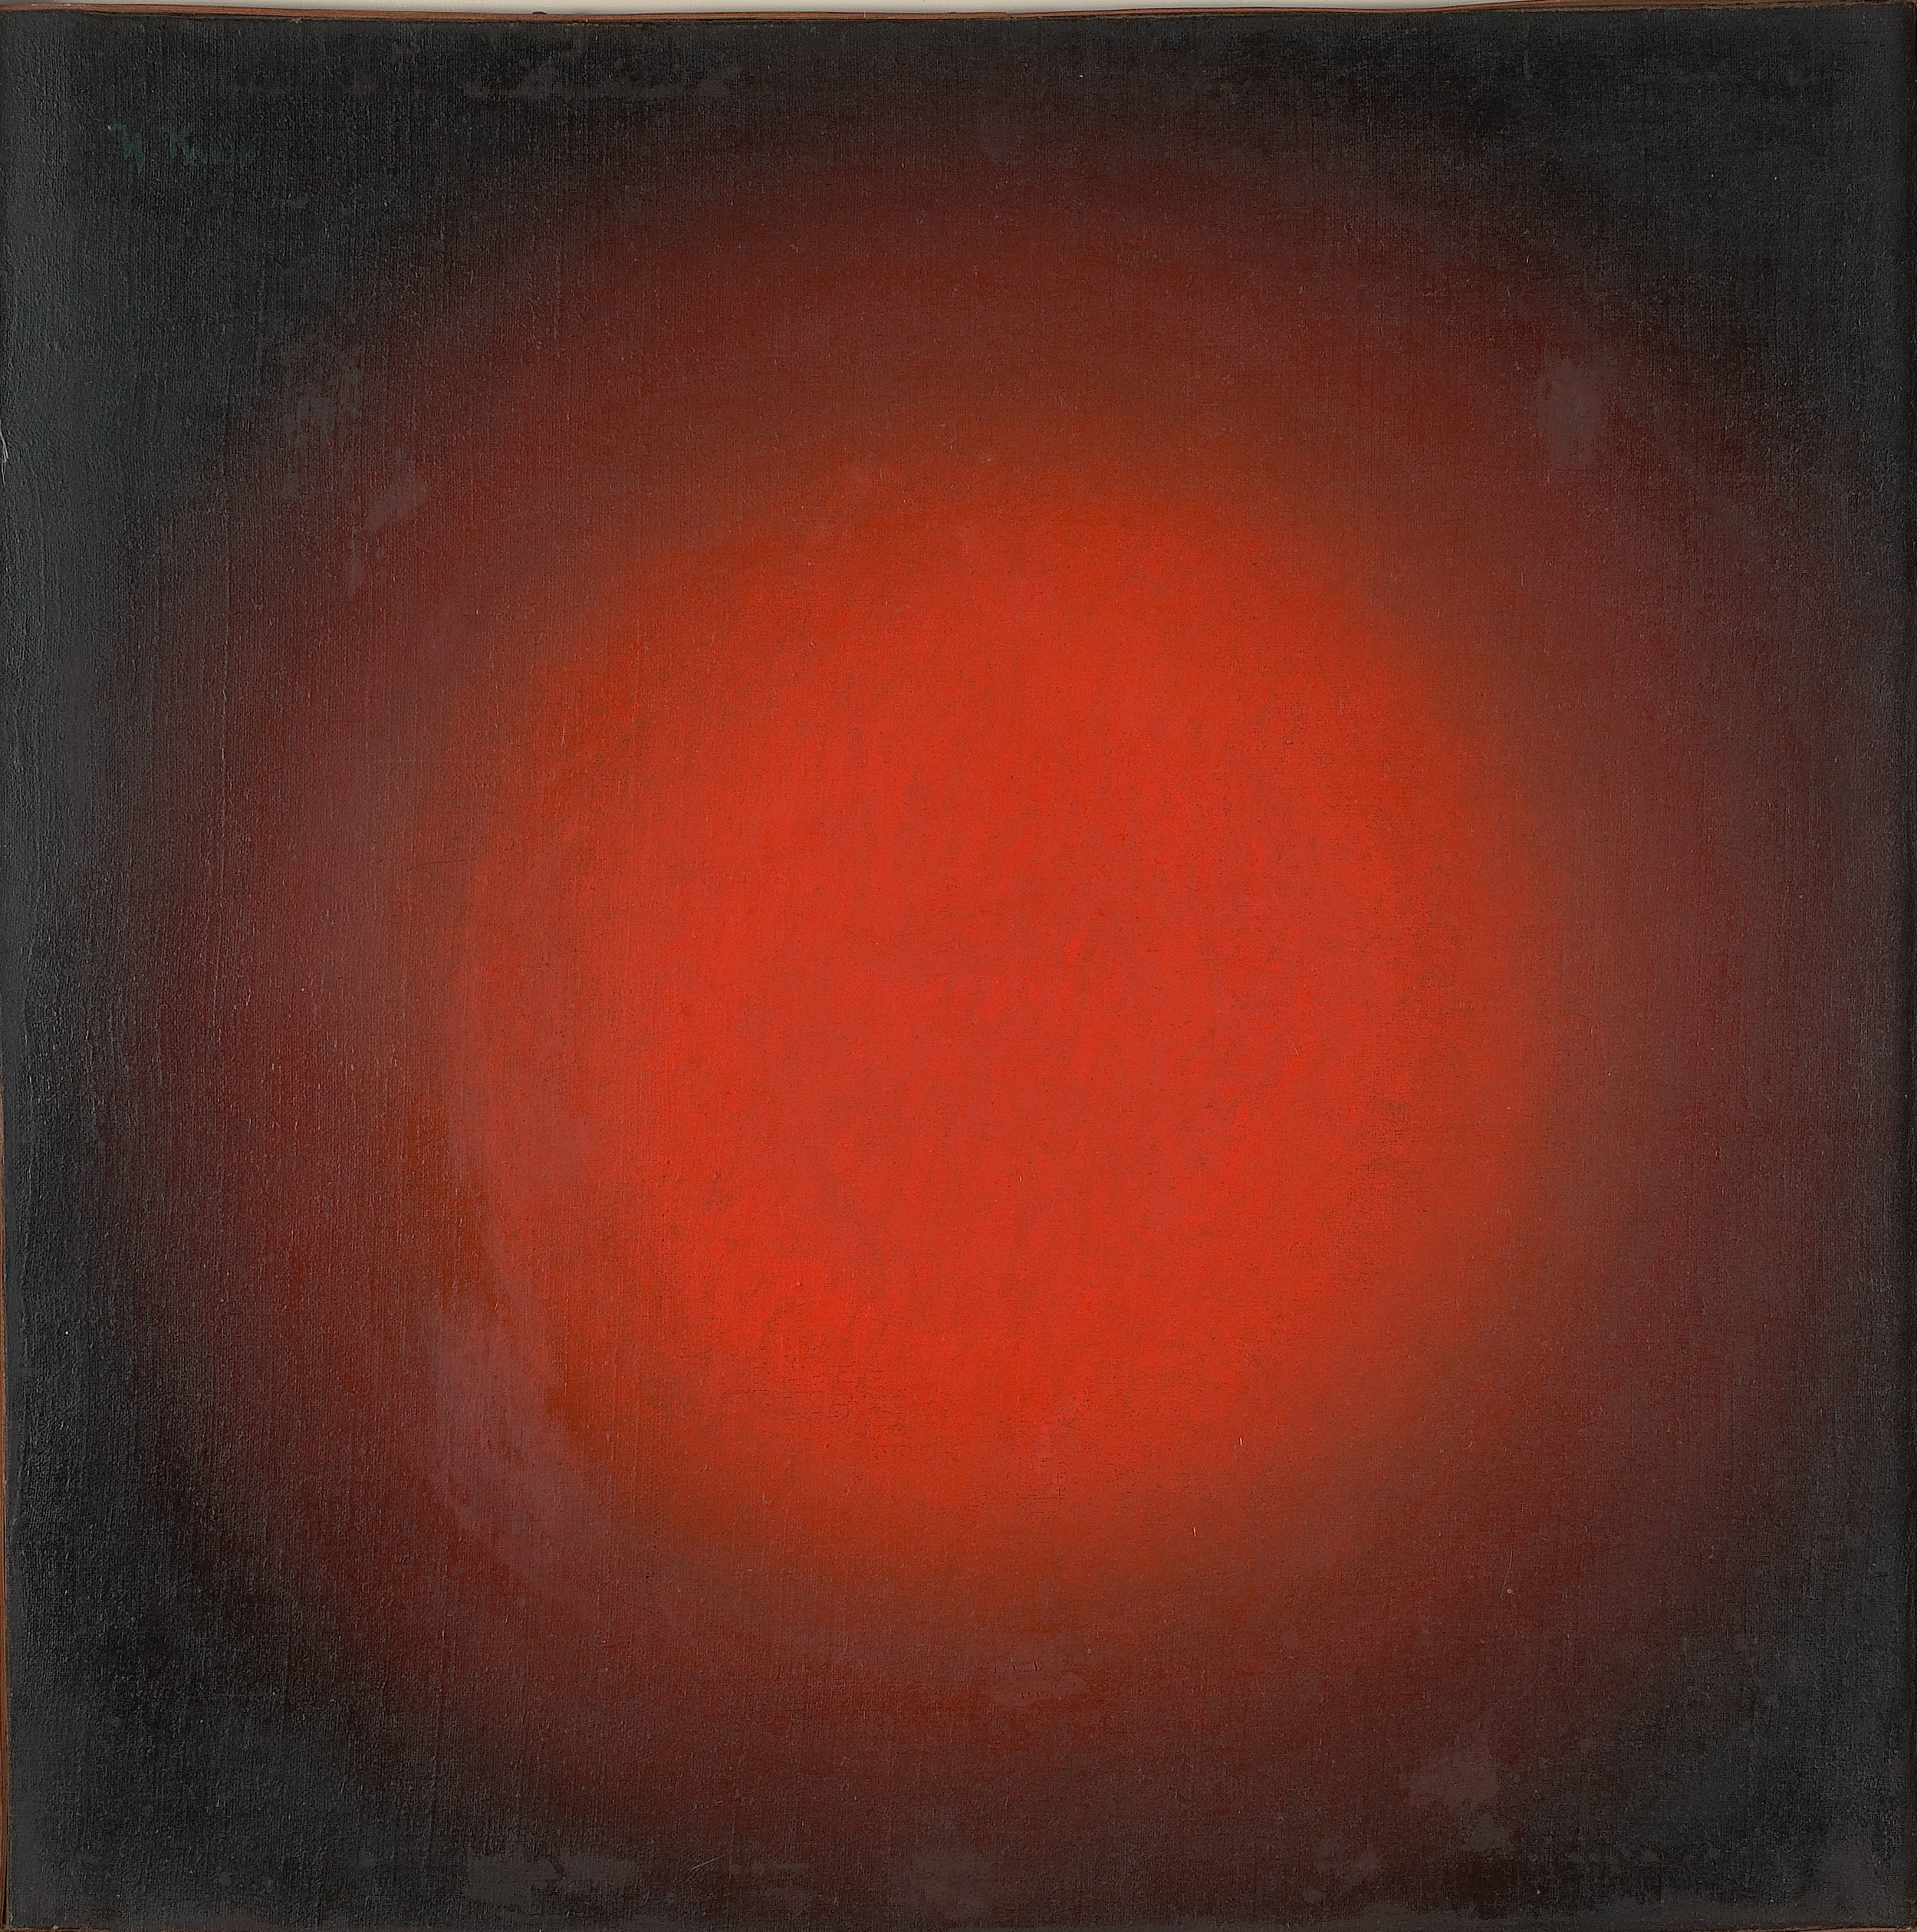 Ivan Kliun (1873 – 1943). RED LIGHT. SPHERICAL COMPOSITION, 1923. Oil on canvas, 68,3 x 67,7 cm. Courtesy: The Greek State Museum of Contemporary Art – Costakis Collection, Thessaloniki